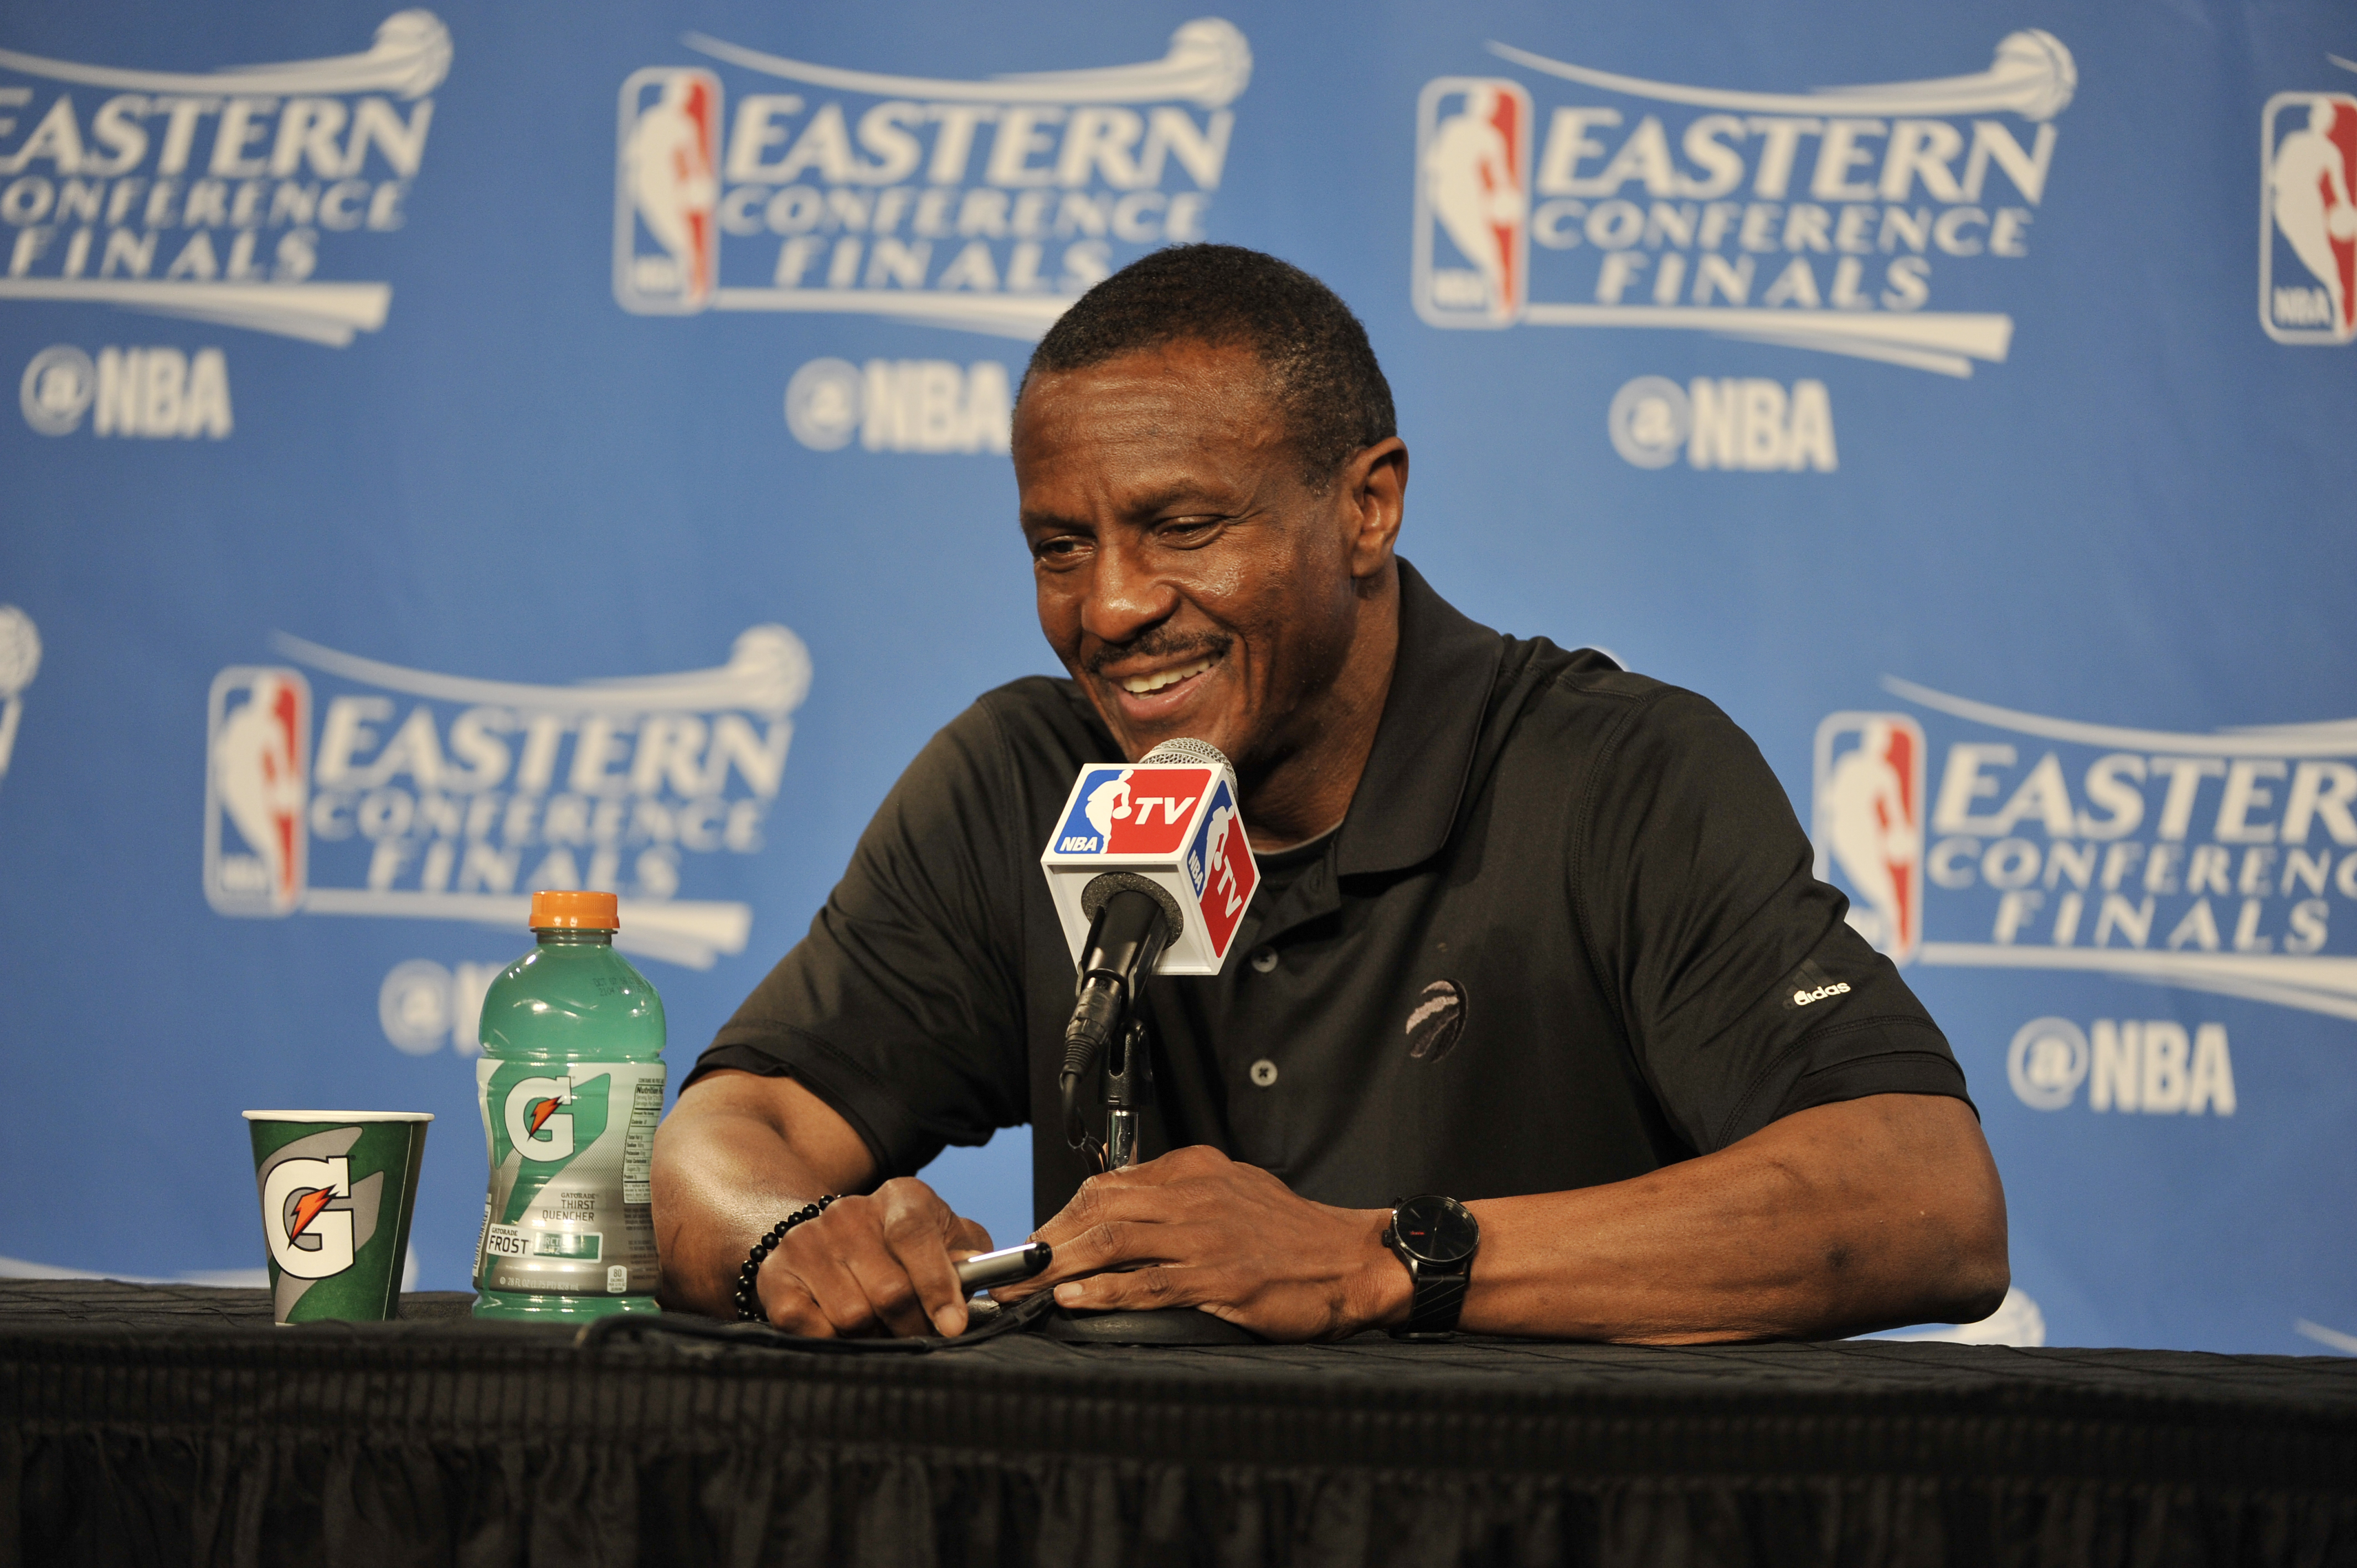 CLEVELAND, OH - MAY 25: Dwane Casey of the Toronto Raptors talks to the media after the game against the Cleveland Cavaliers in Game Five of the Eastern Confernce Finals of the 2016 NBA Playoffs on May 25, 2016 at The Quicken Loans Arena in Cleveland, Ohi